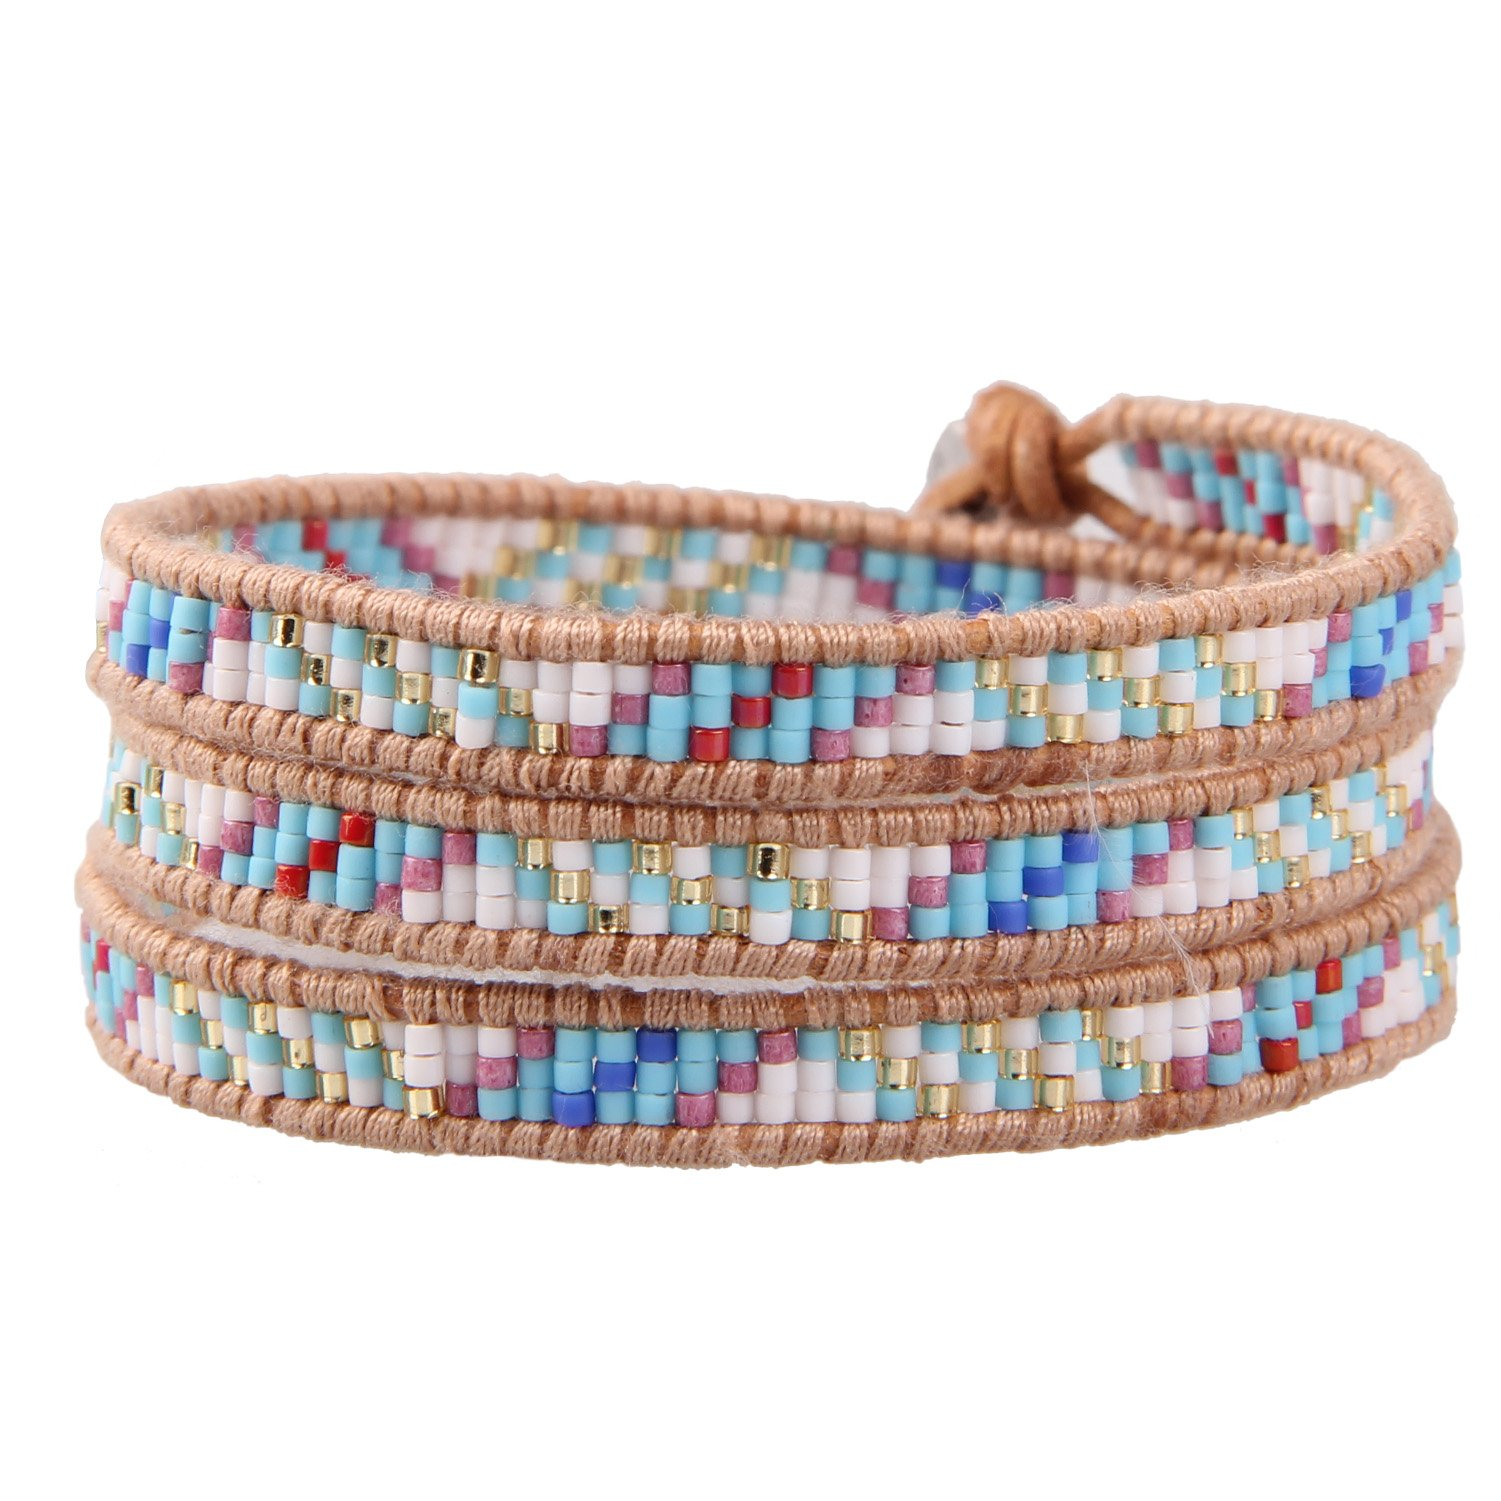 KELITCH Powder Coral Beads Original Leather Charm 3 Wrap Bracelet Handmade New Top Stretch Bracelets (Blue)